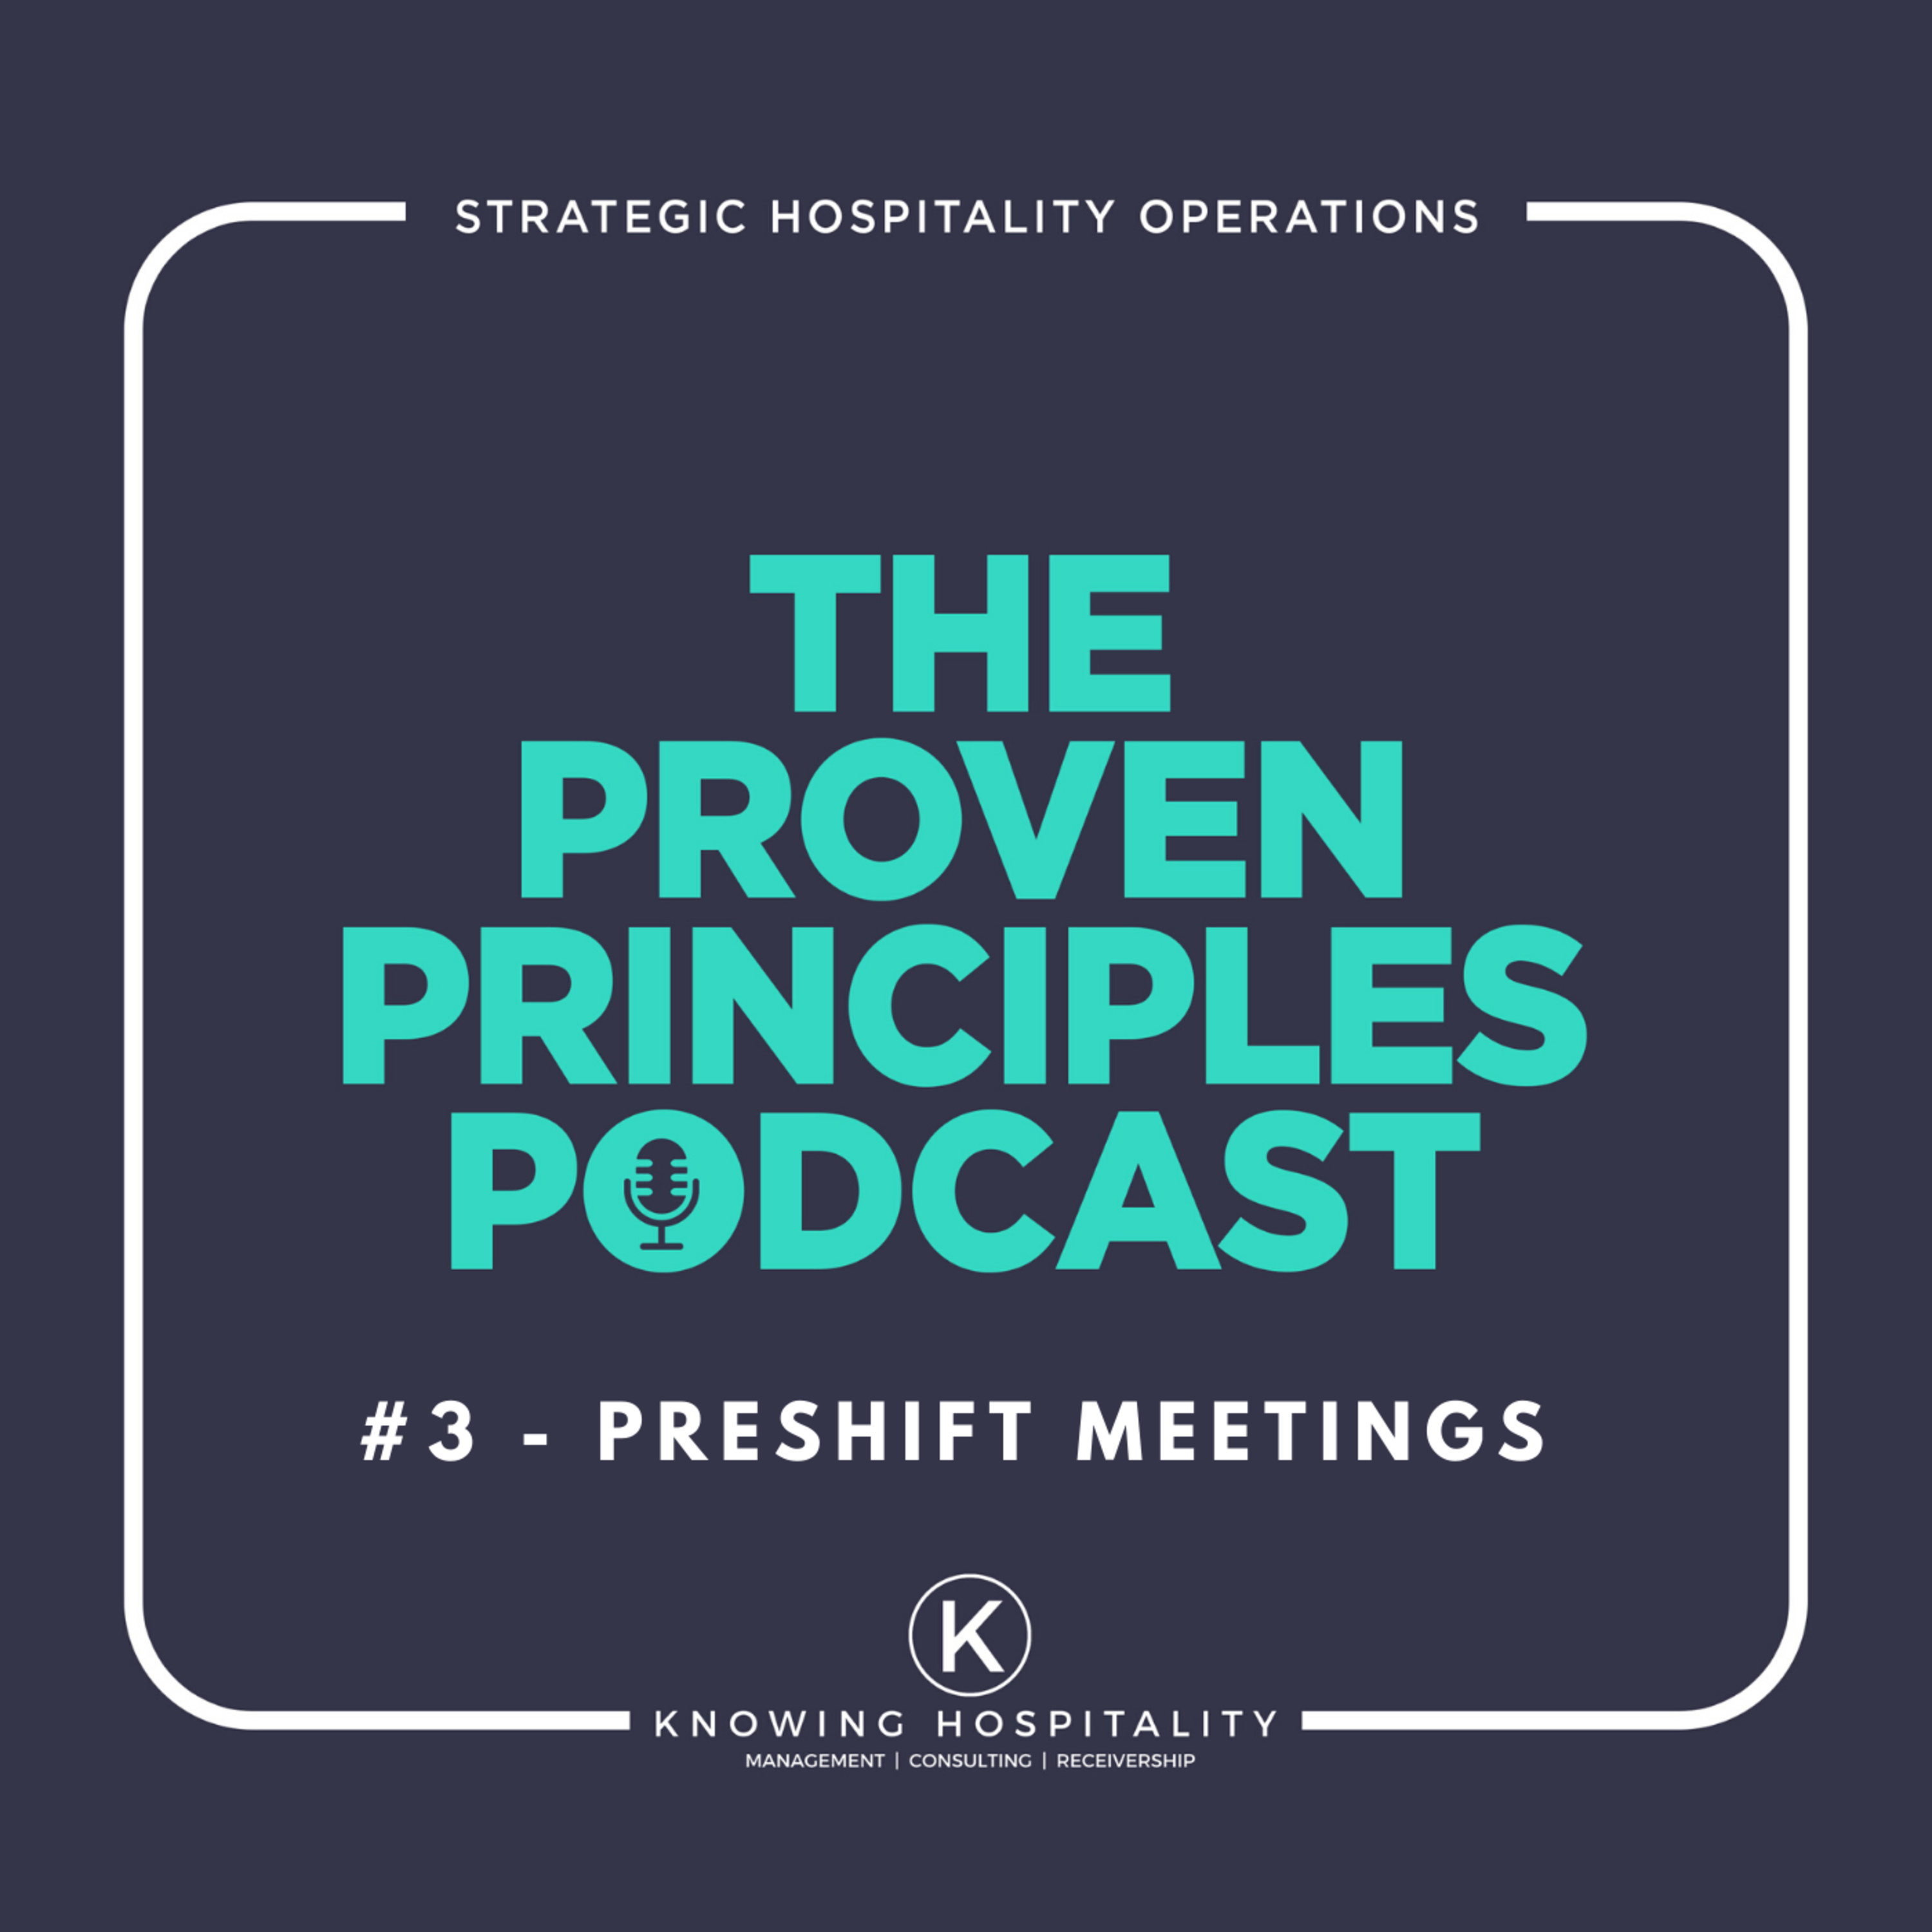 #3: How To Have Effective Preshift Meetings